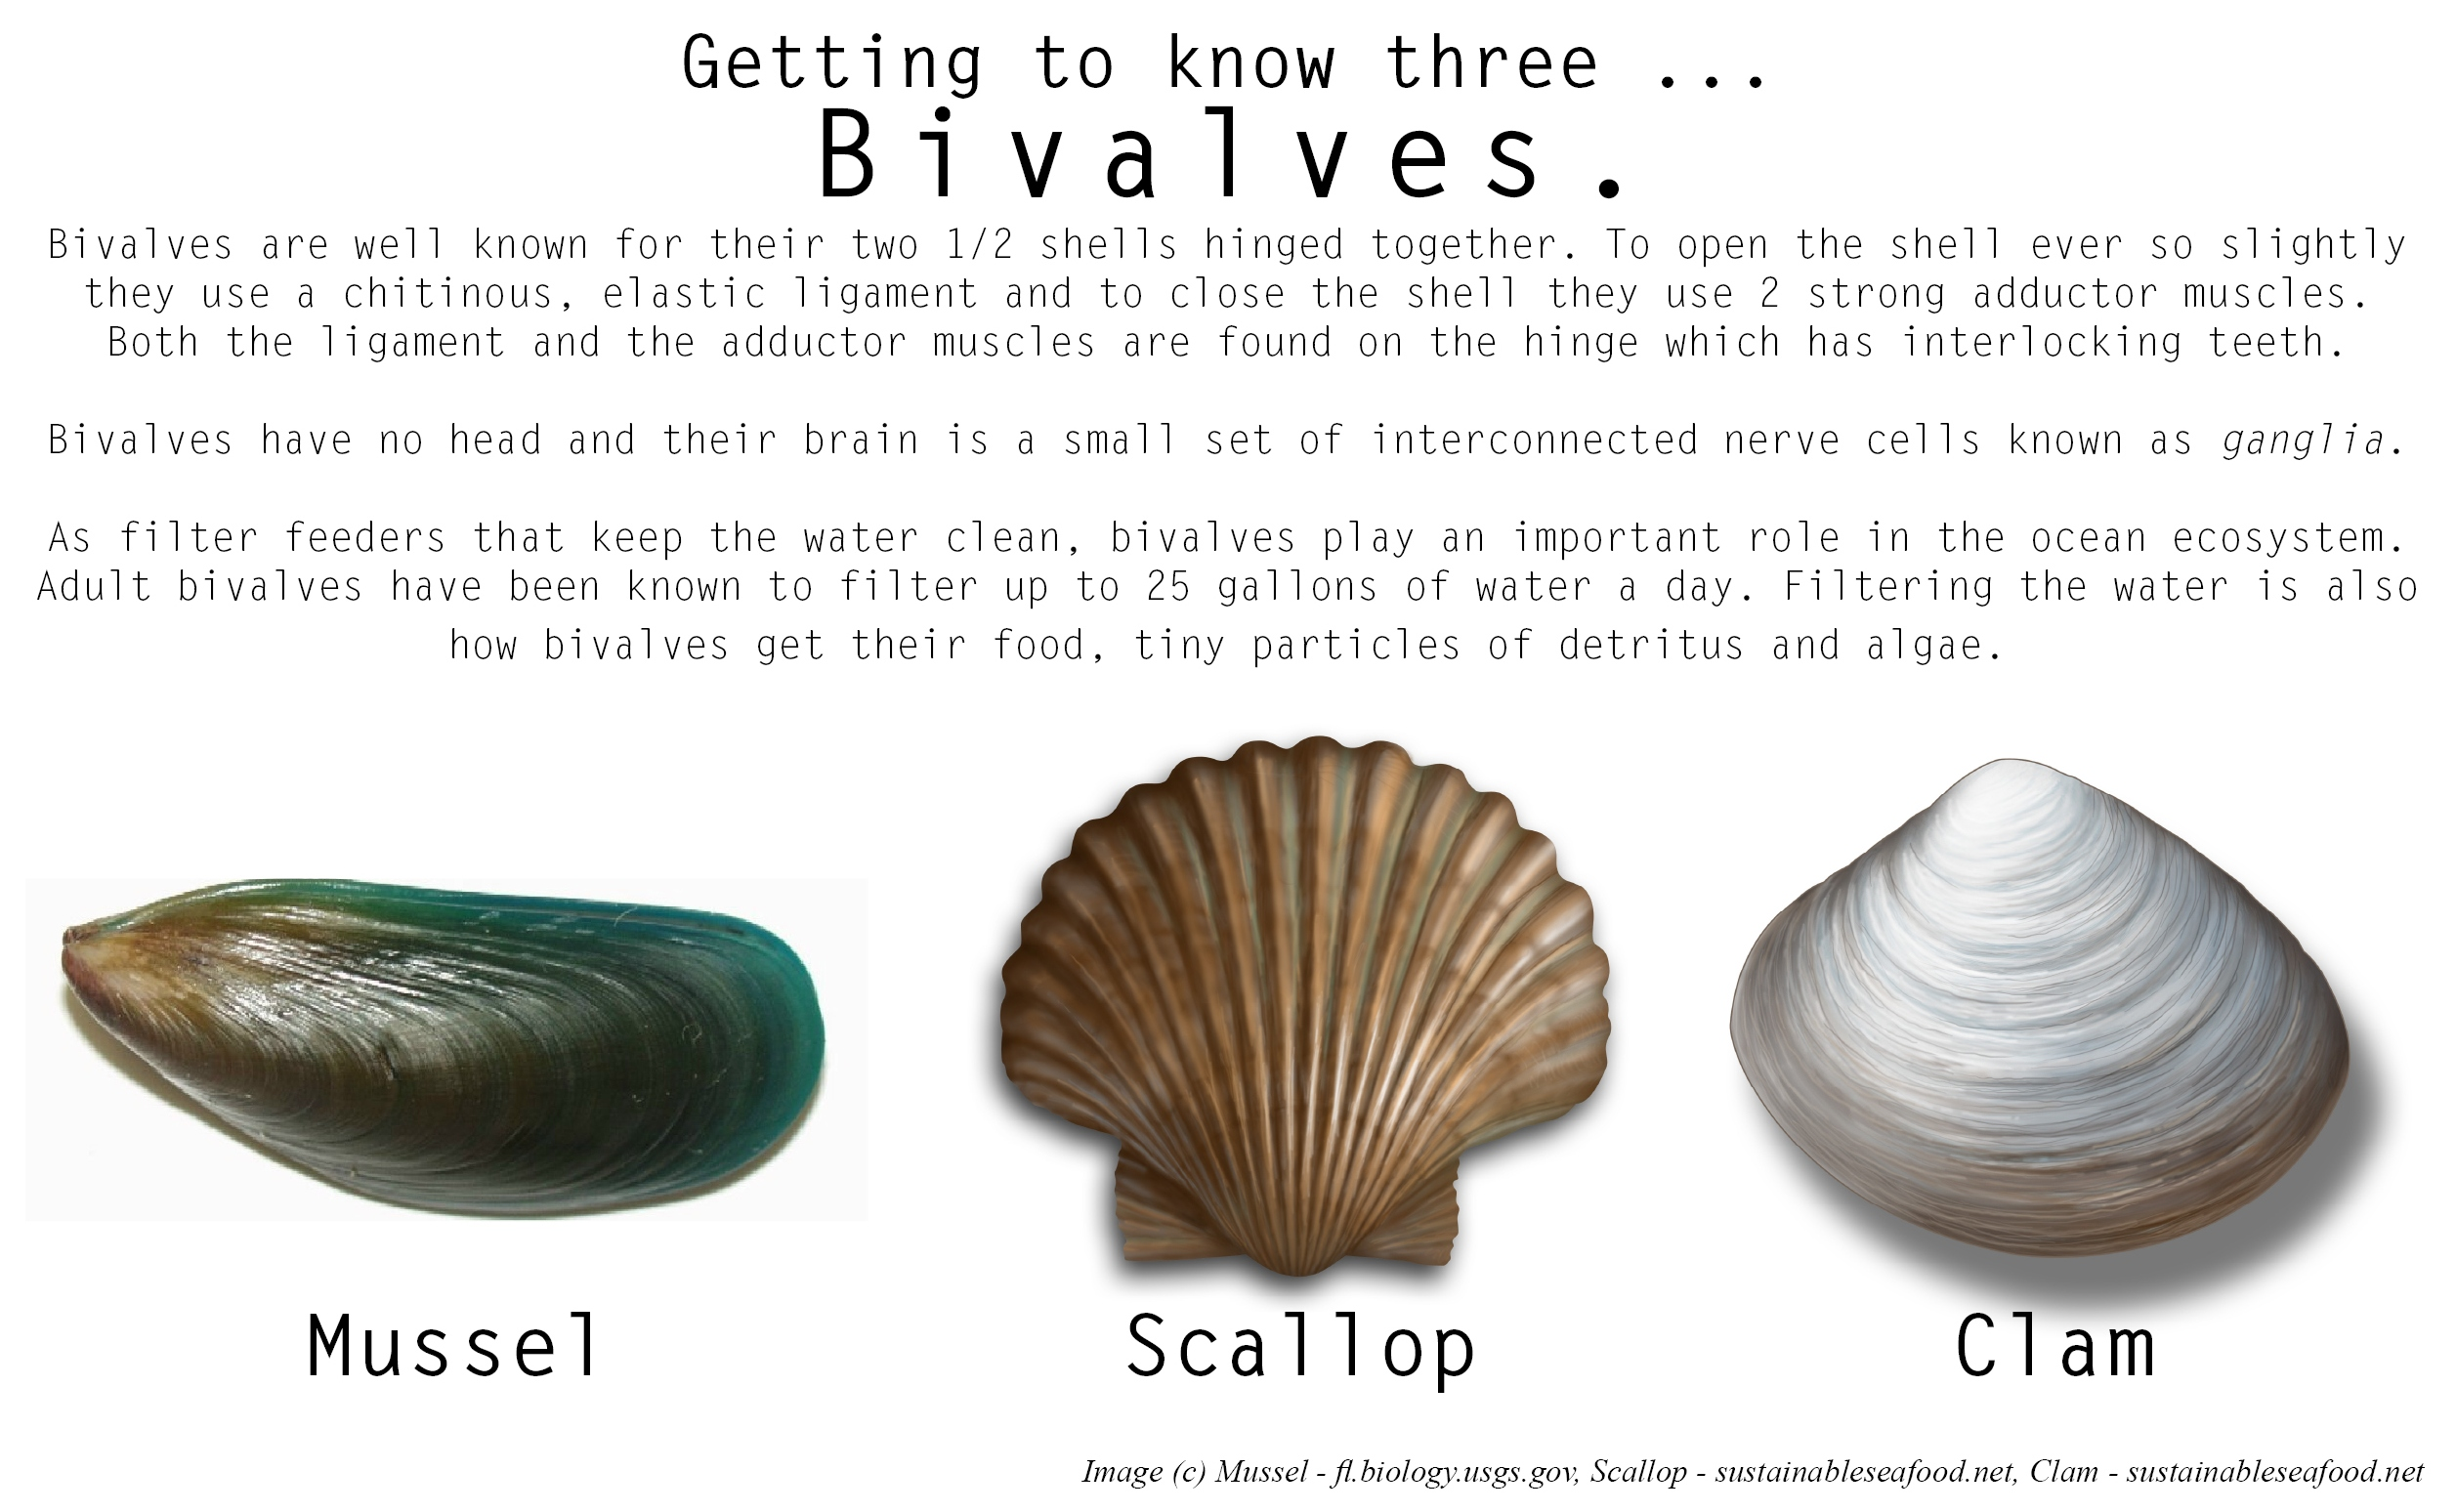 Getting To Know Three Bivalve Edition